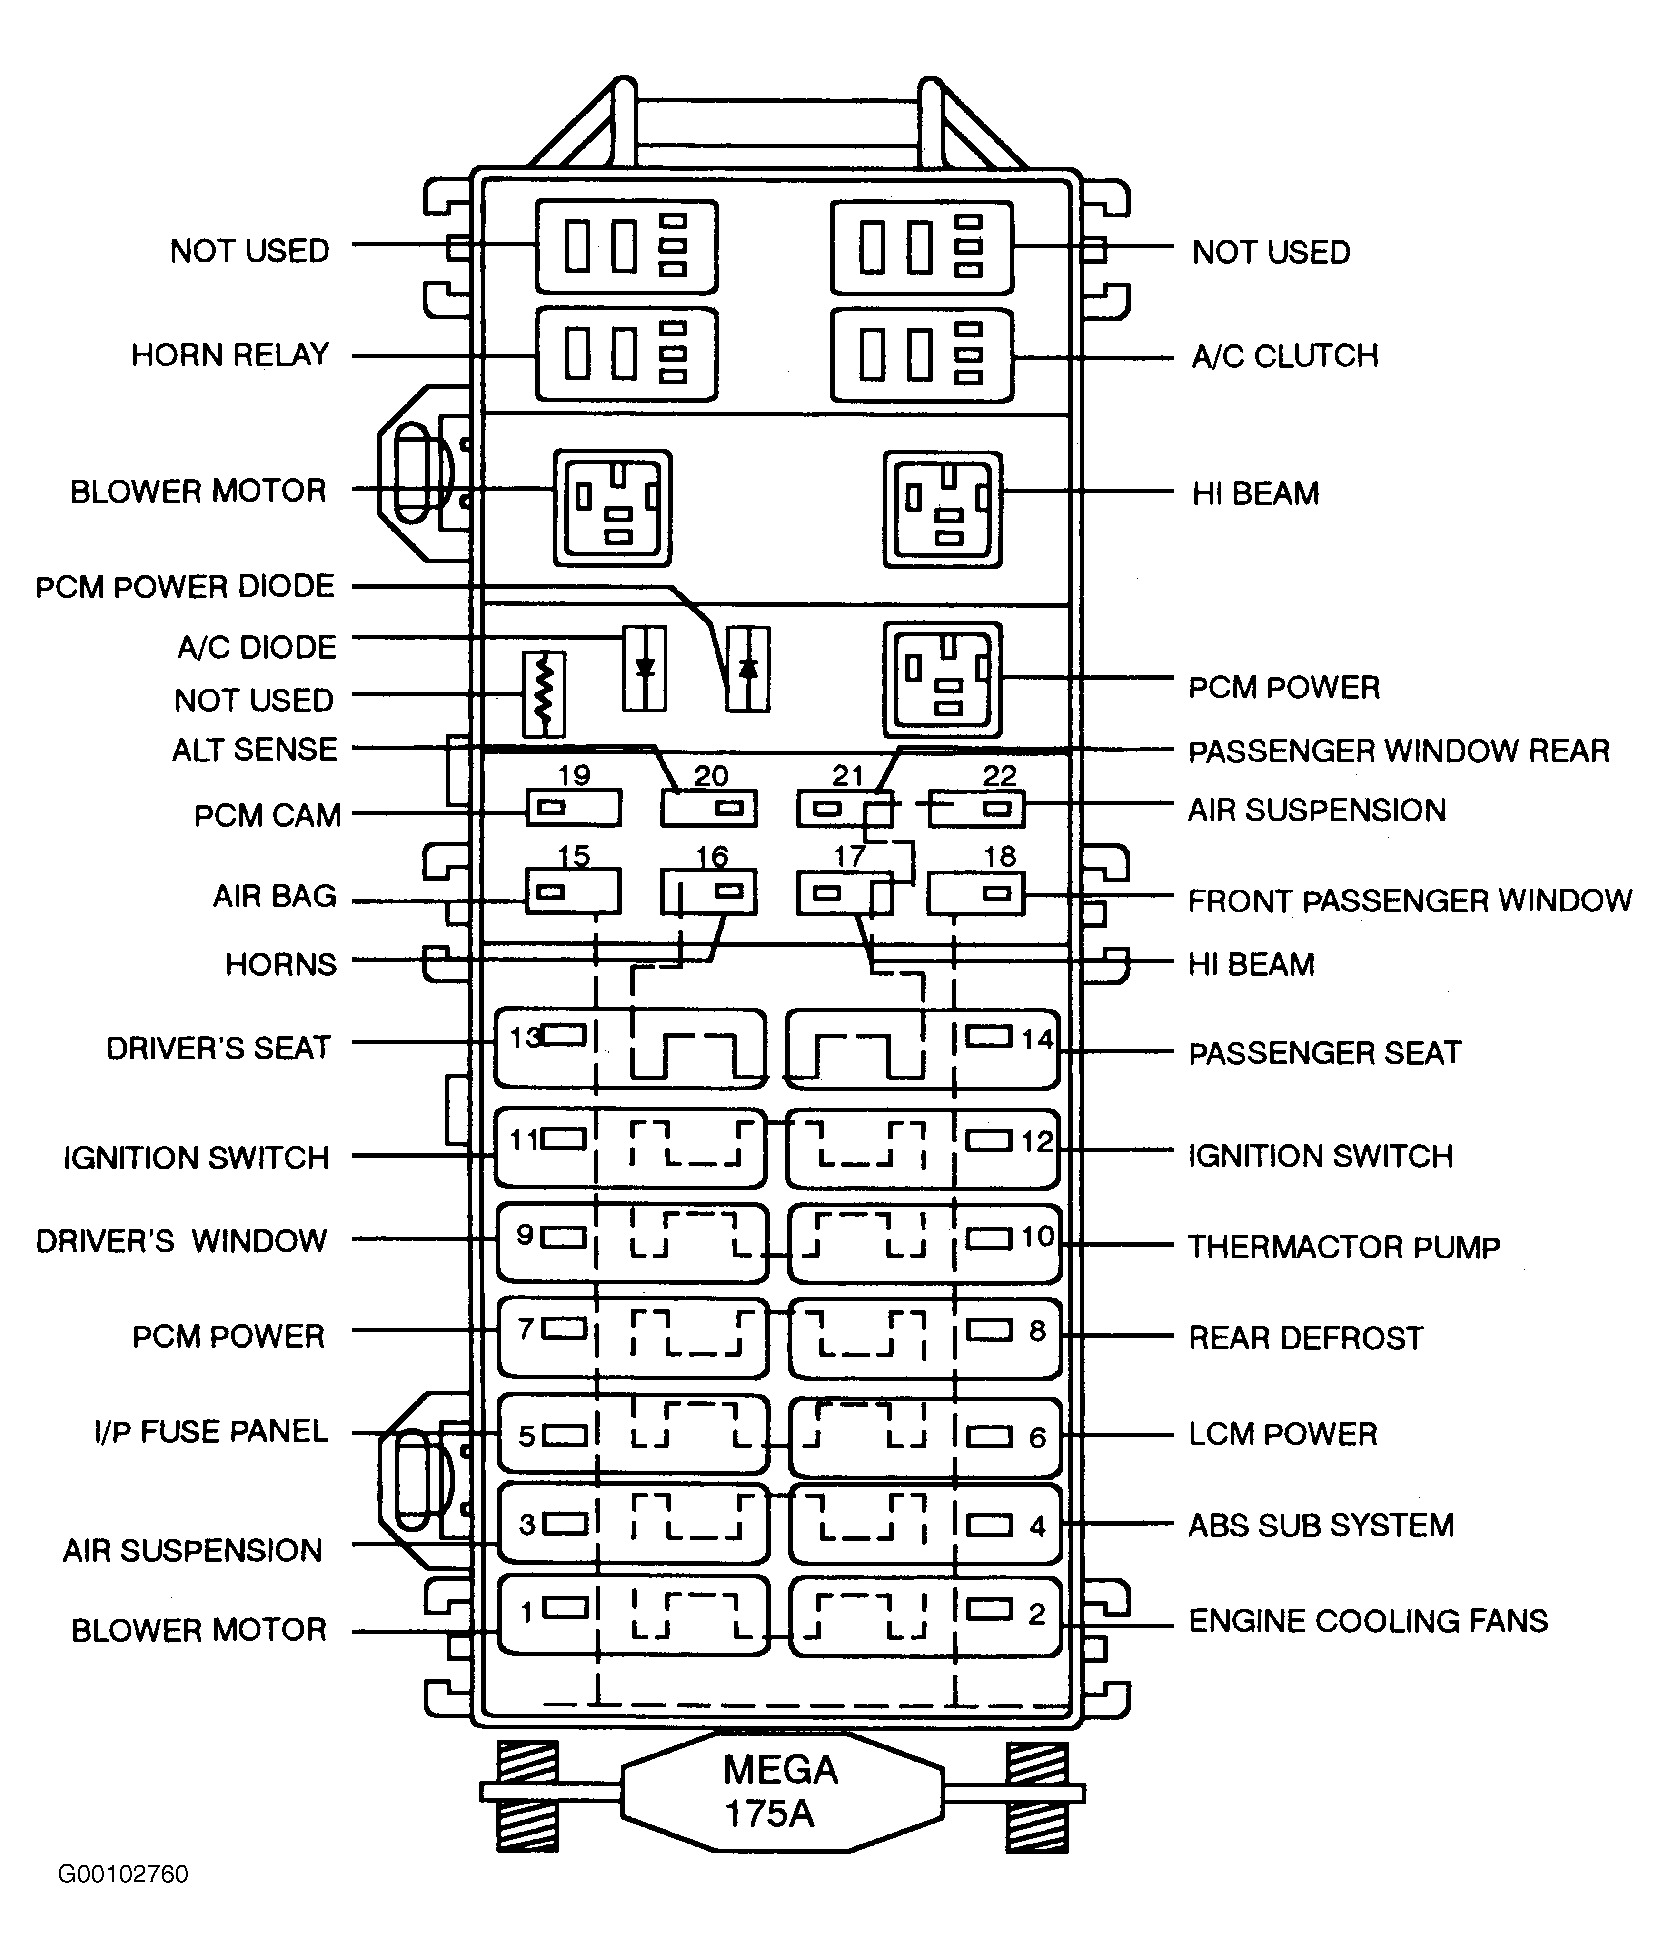 2001 Lincoln Continental Fuse Box Diagram on 2002 lincoln ls fuel pump wiring diagram